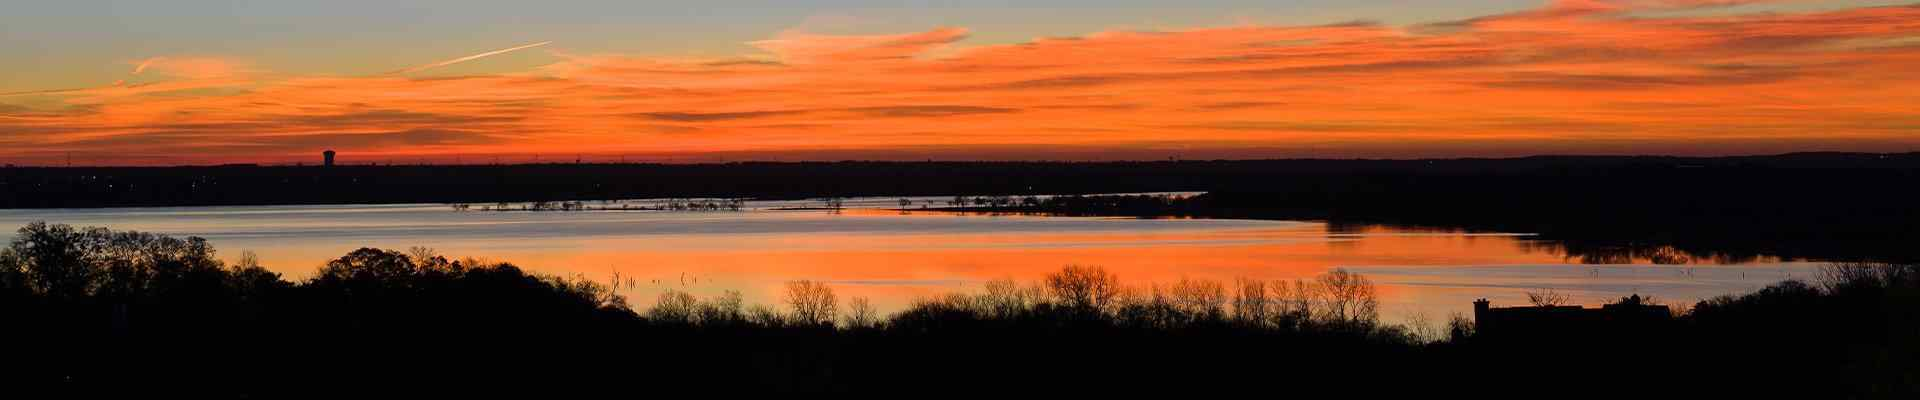 a view of a sunset over a pond in benbrook texas